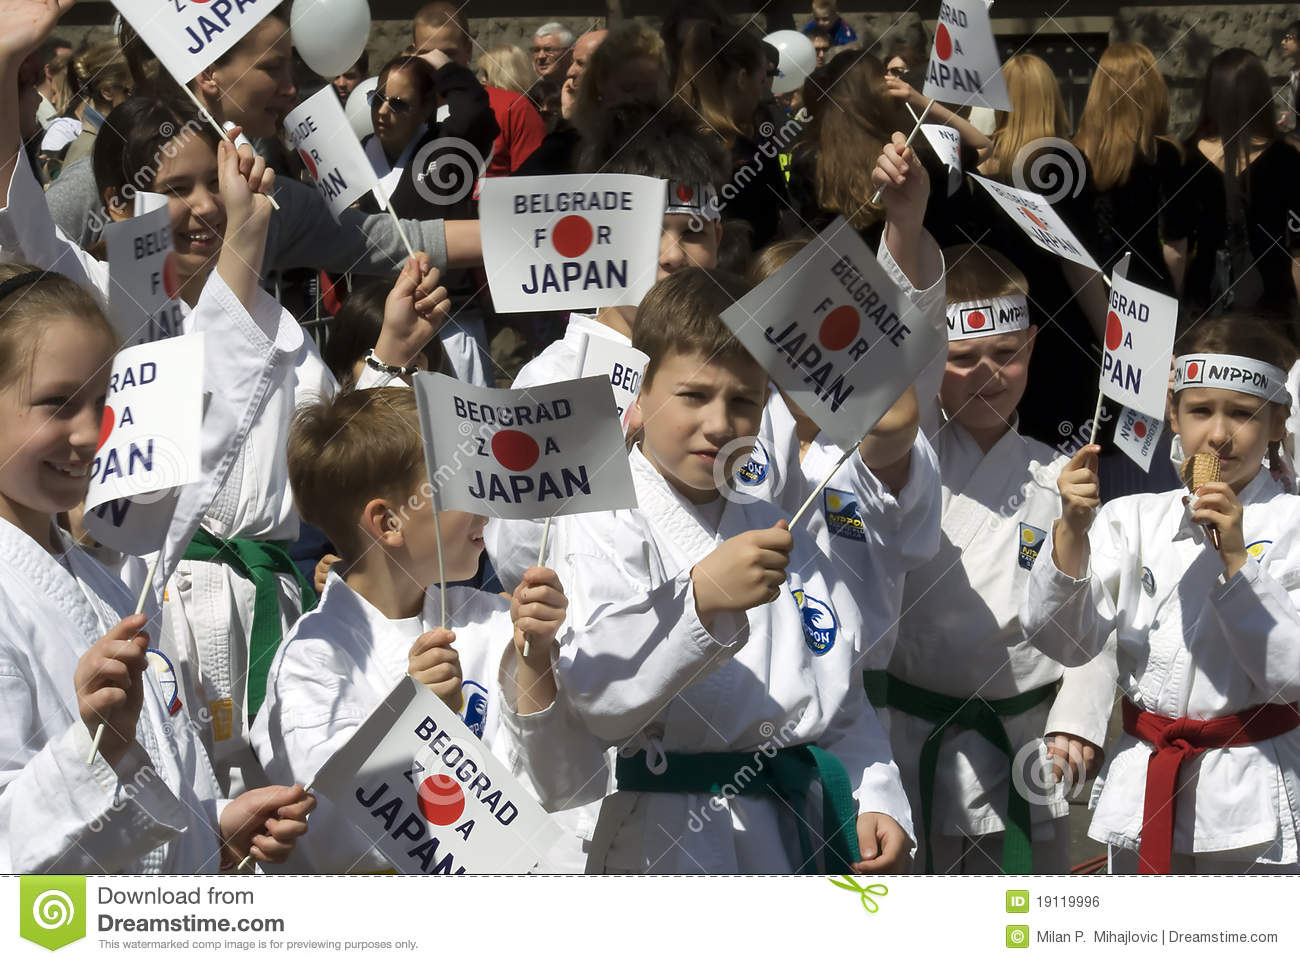 Children with banners supporting Japan